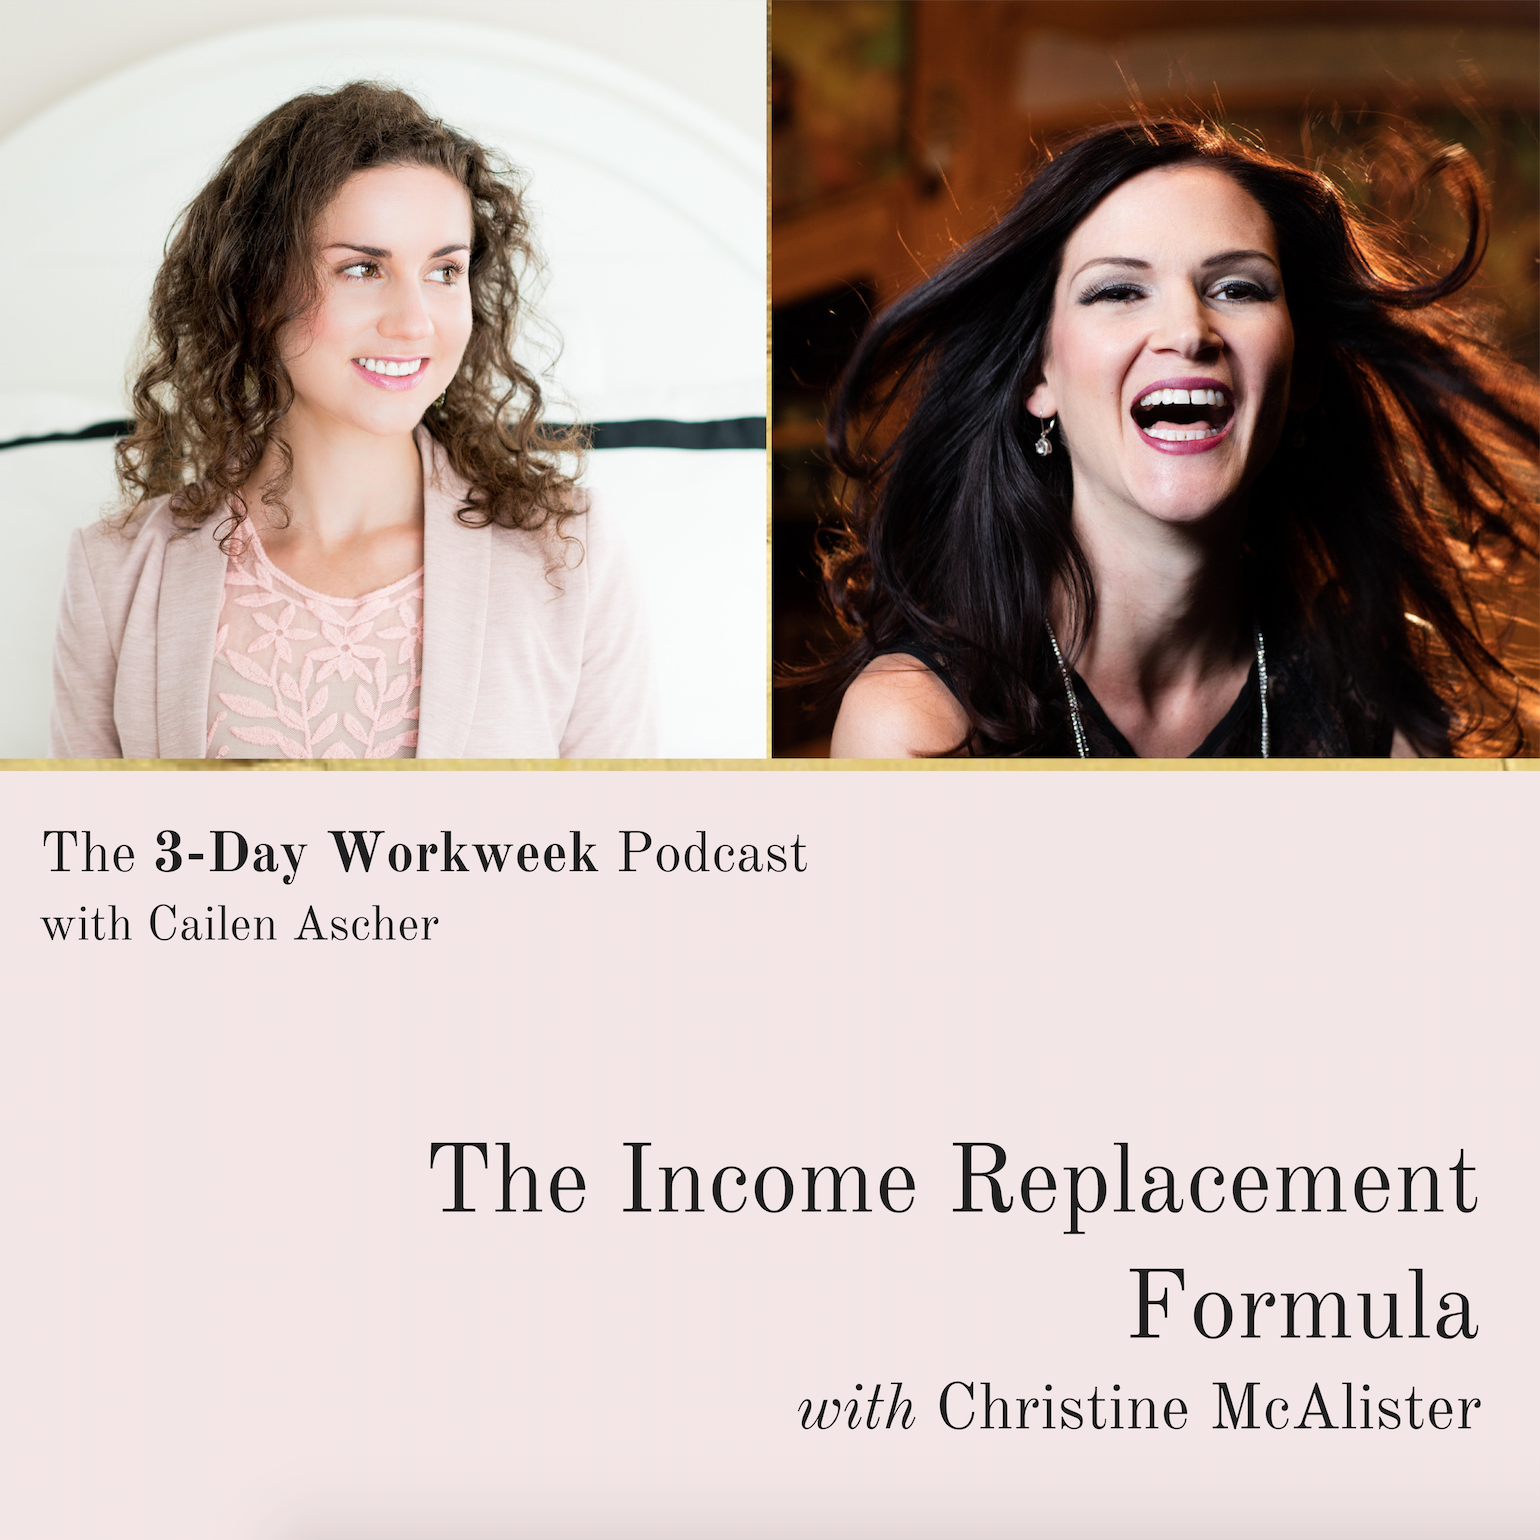 The 3-Day Workweek Podcast with Cailen Ascher - 2018-05-02 - The Income Replacement Formula with Christine McAlister - Square Promo Image.png